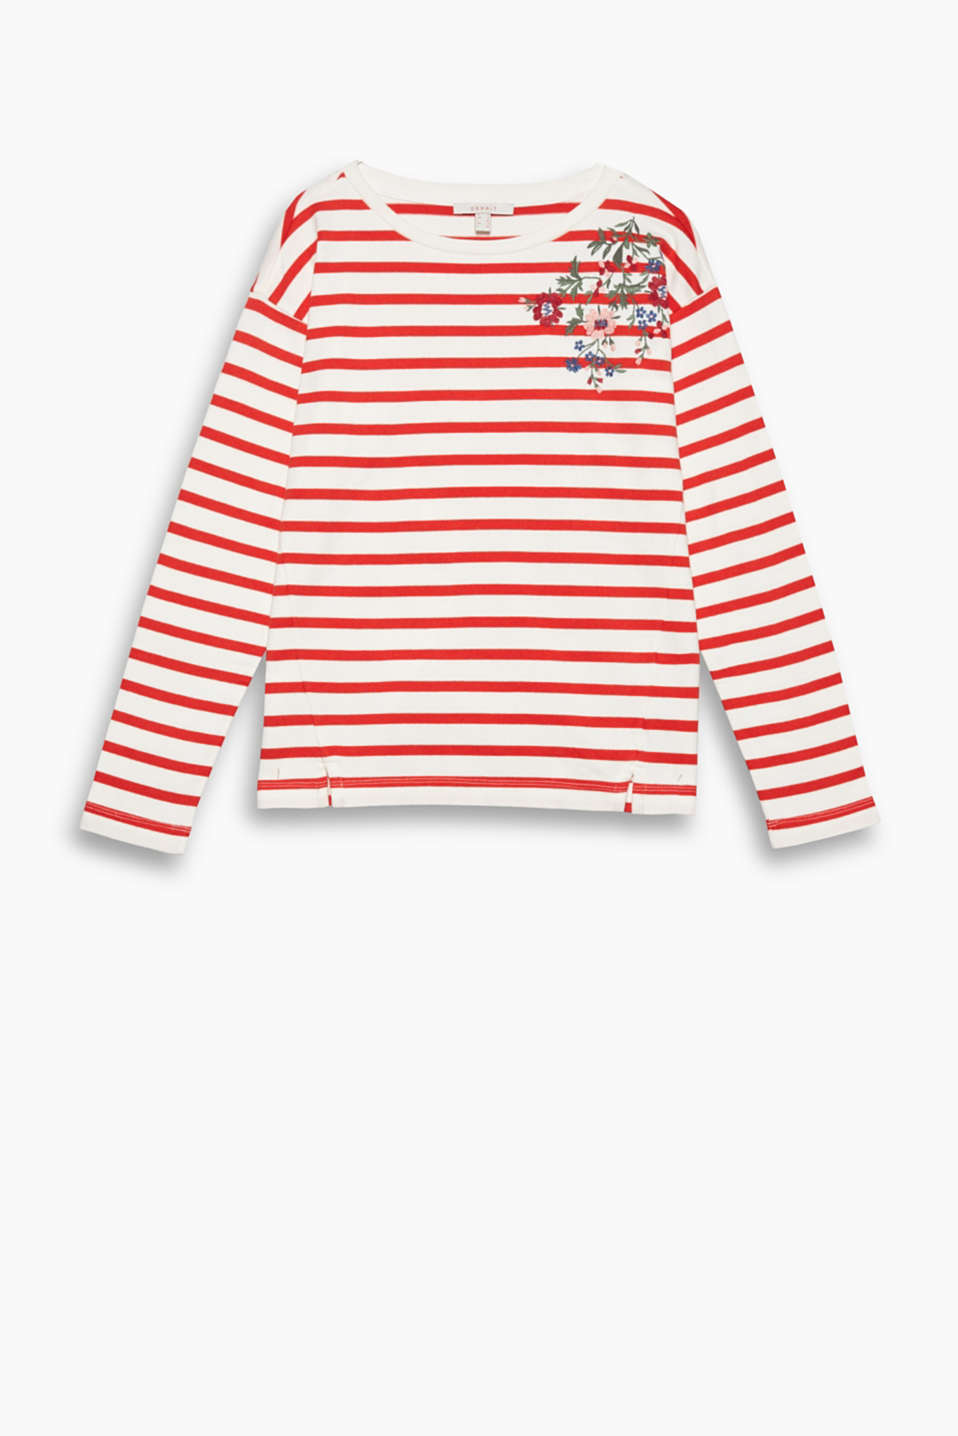 Fantastic: the mix of sporty stripes and floral embroidery gives this sweatshirt its brand new look!